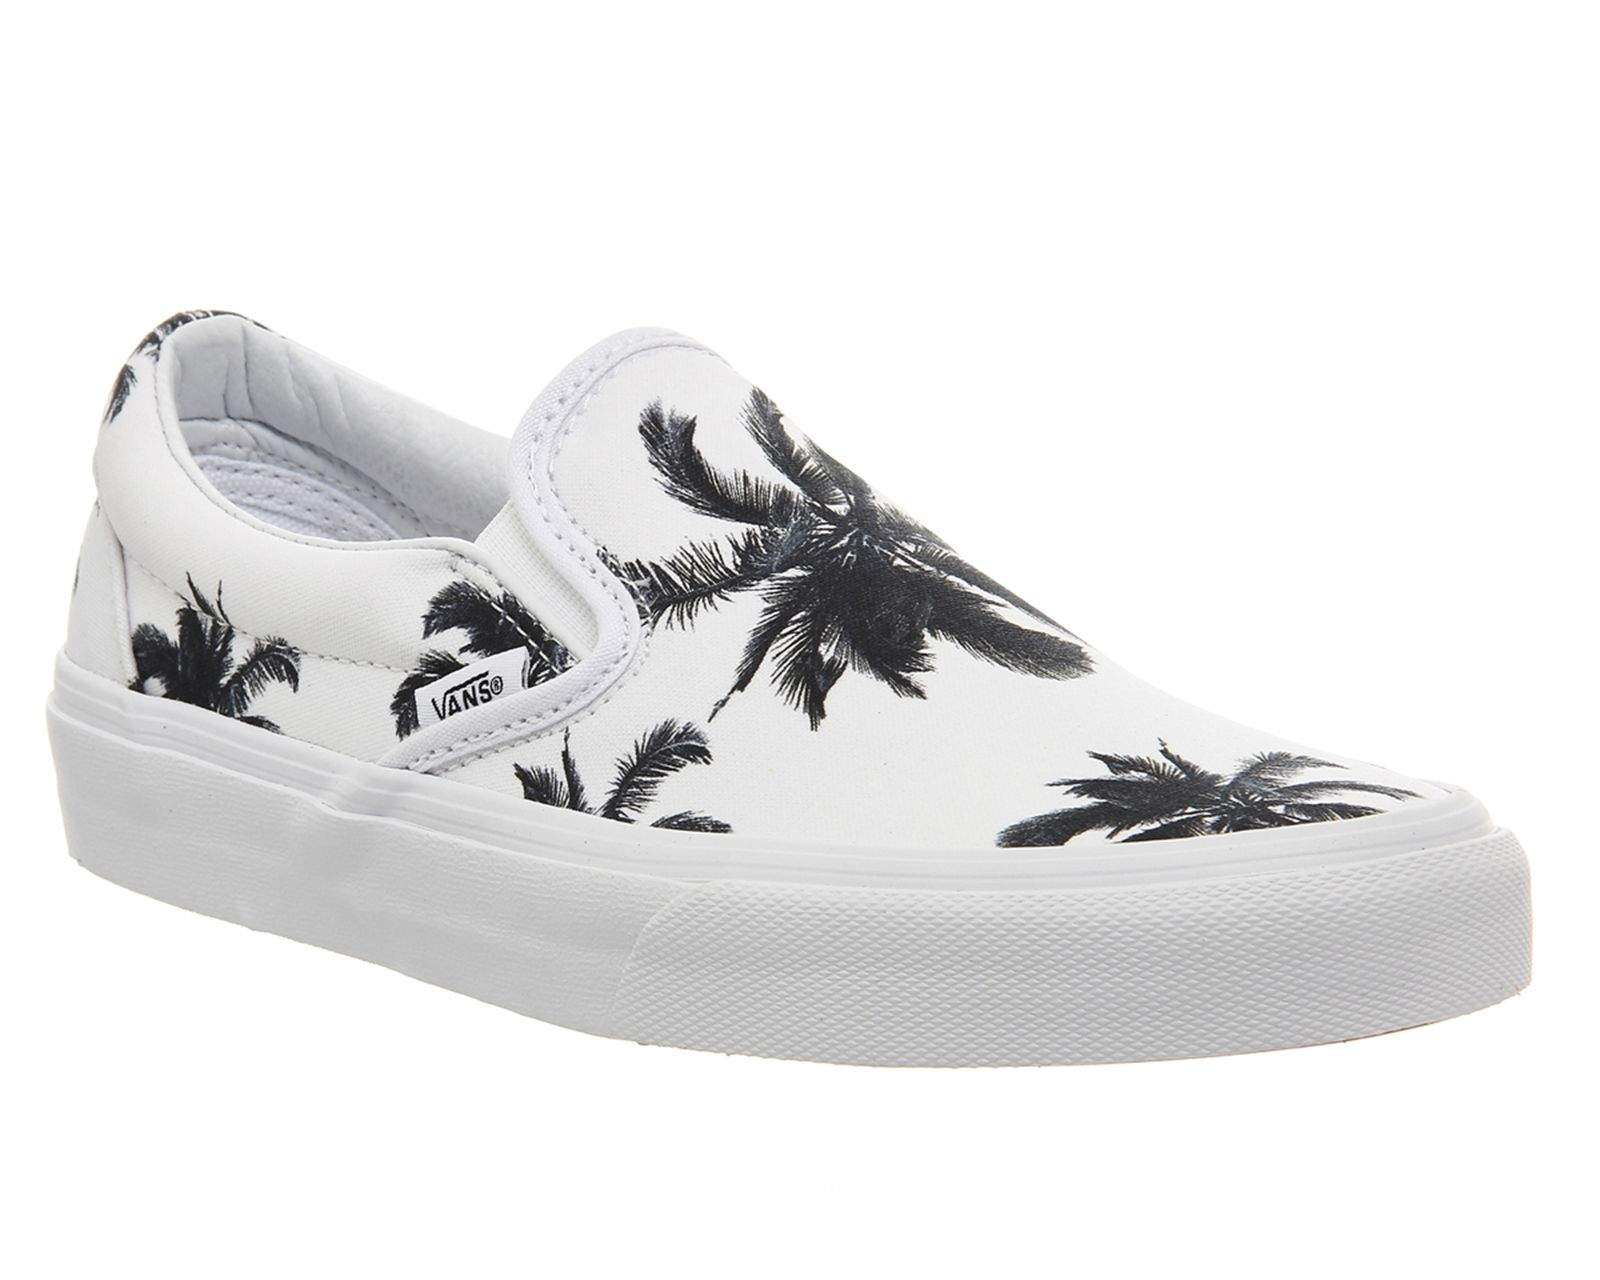 Buy Palm Print White Vans Classic Slip On Shoes from OFFICE.co.uk.